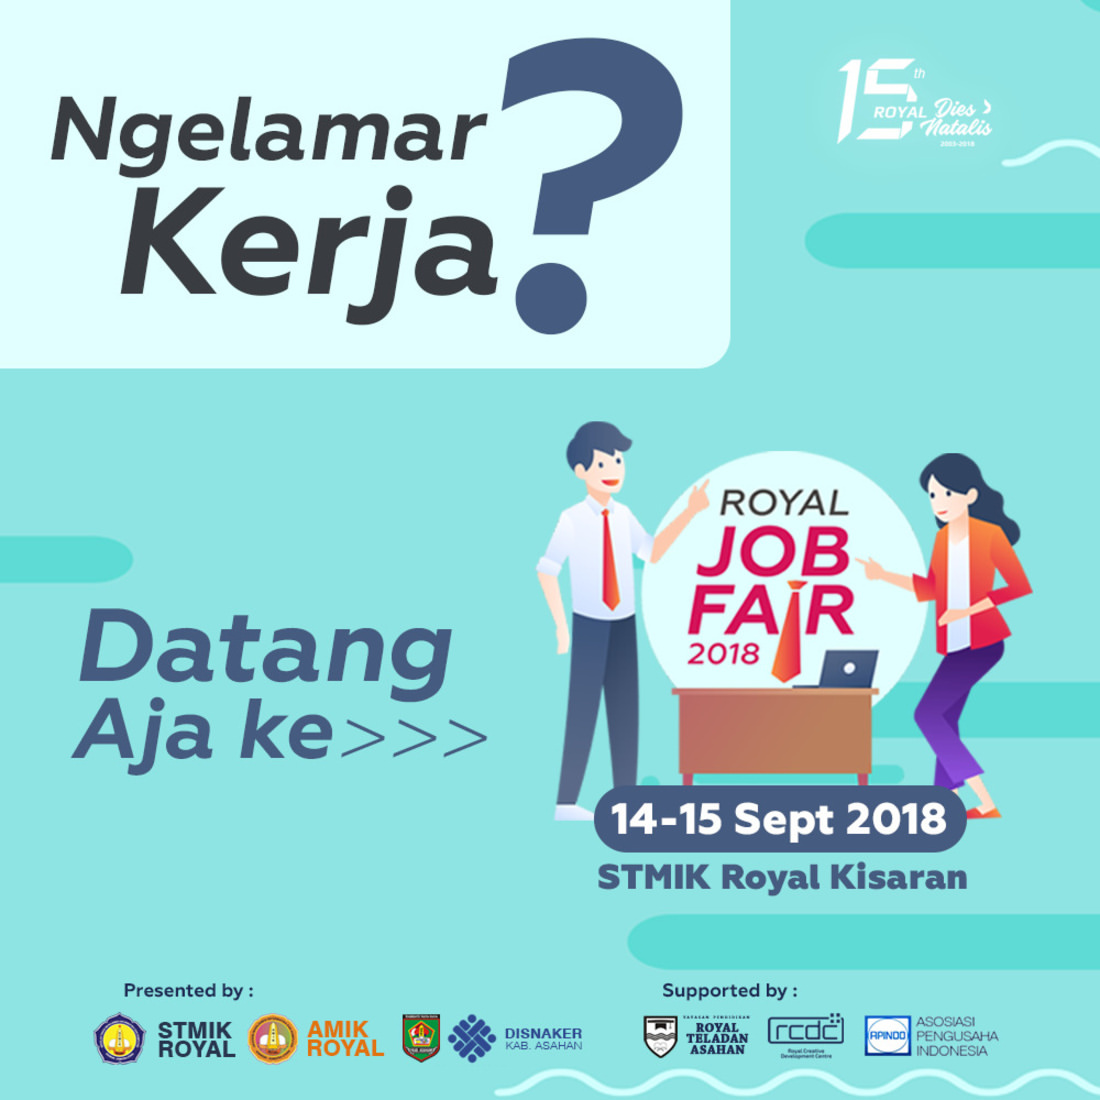 Royal Job Fair - Kampus STMIK Royal, 14-15 September 2018